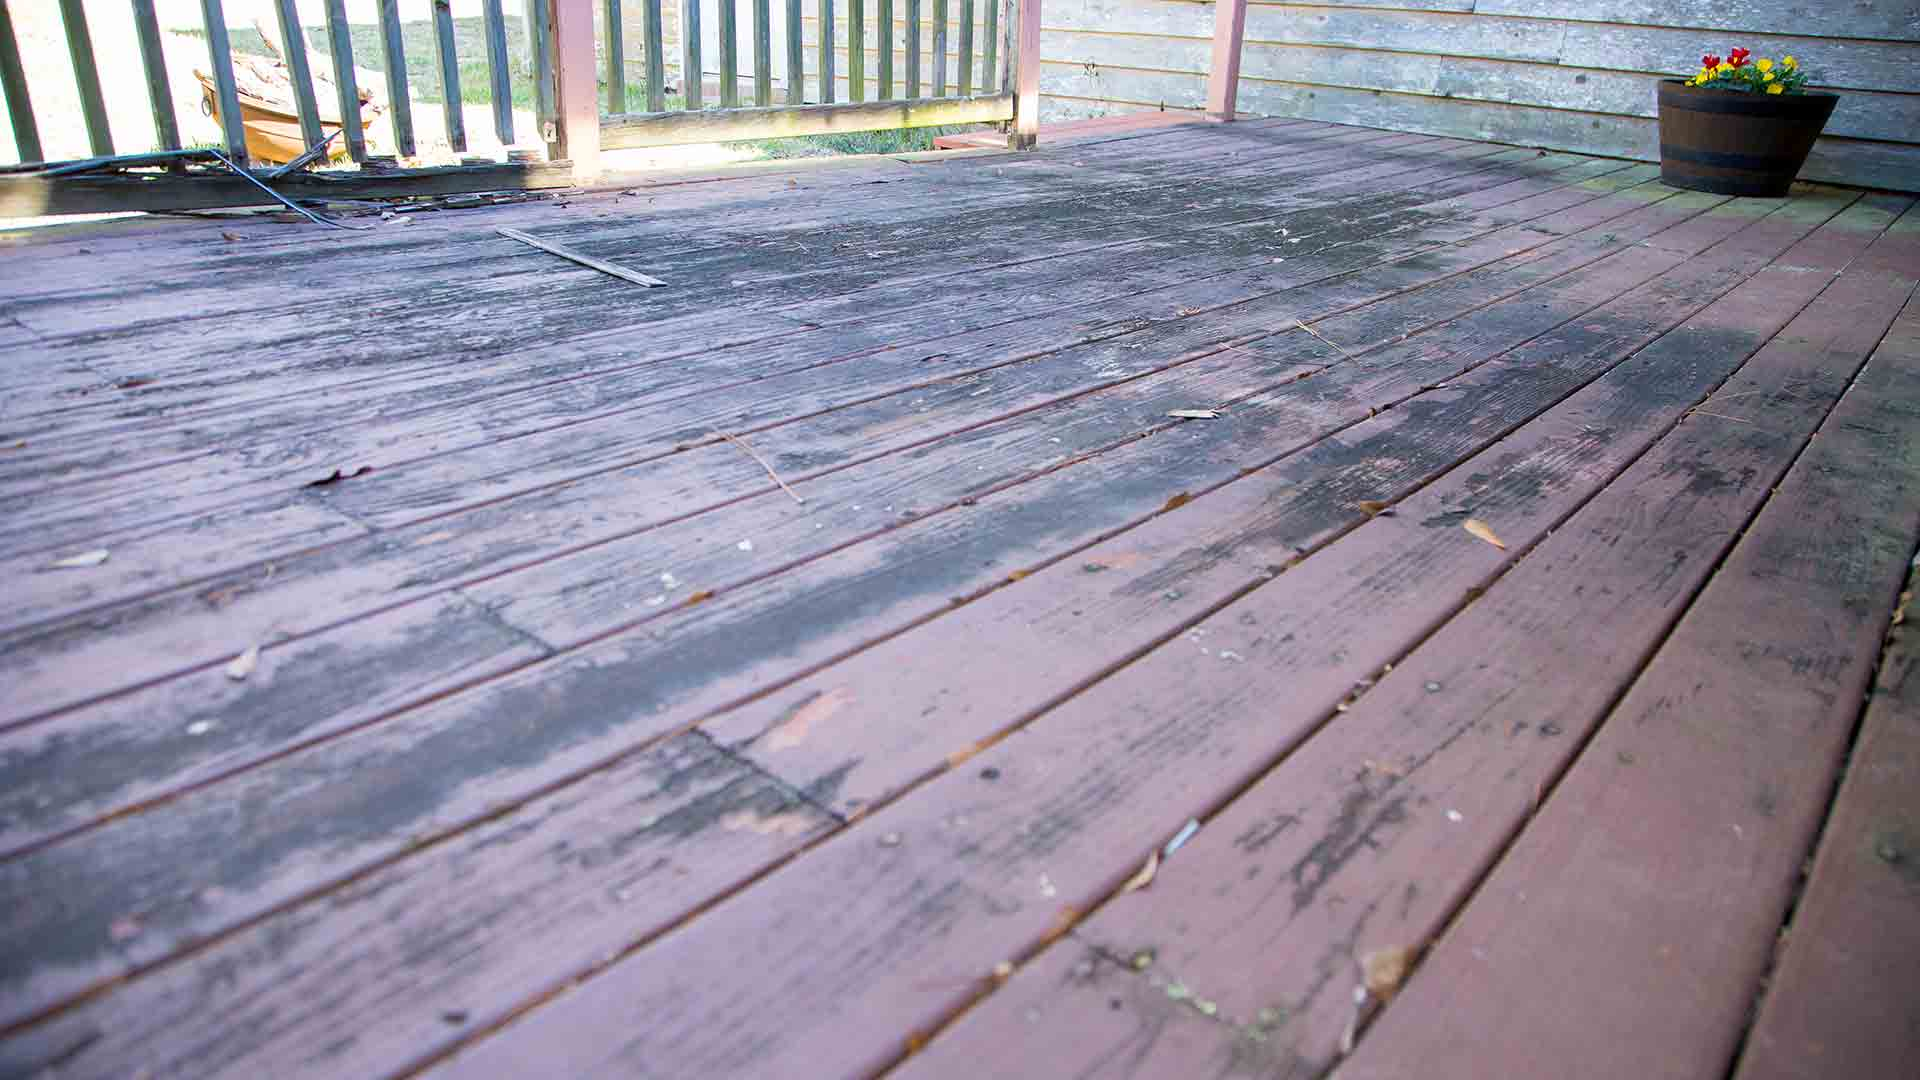 Deck boards with debris